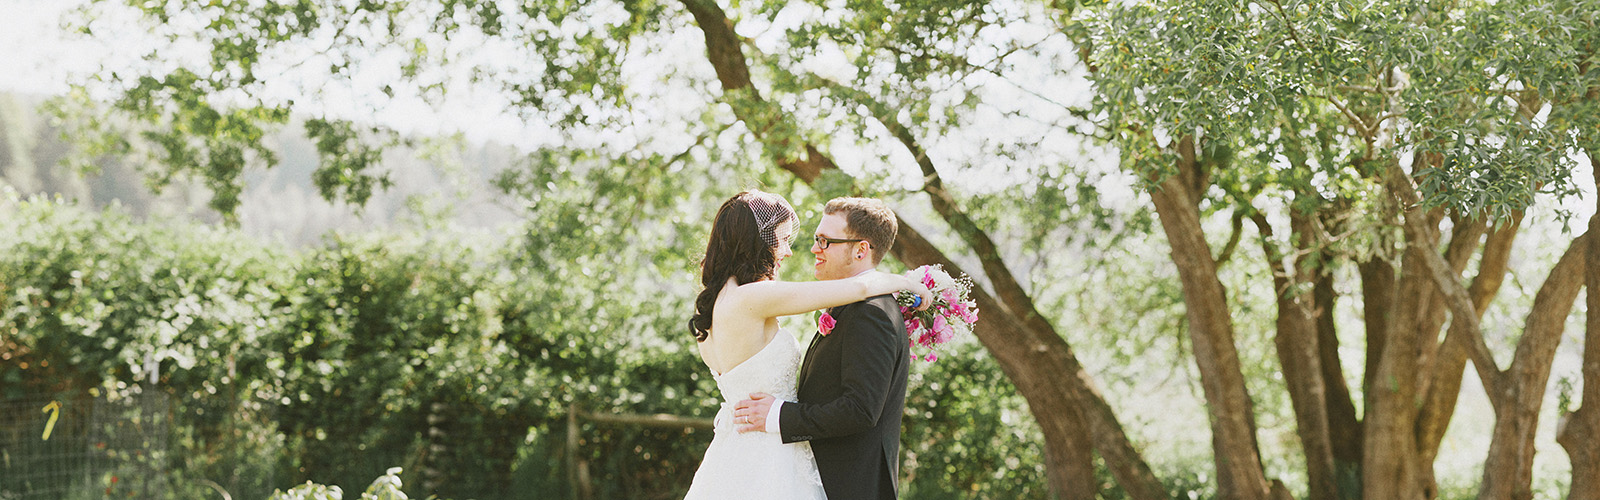 Portland wedding photographer reviews - Violet and Kellen's Humboldt Wedding